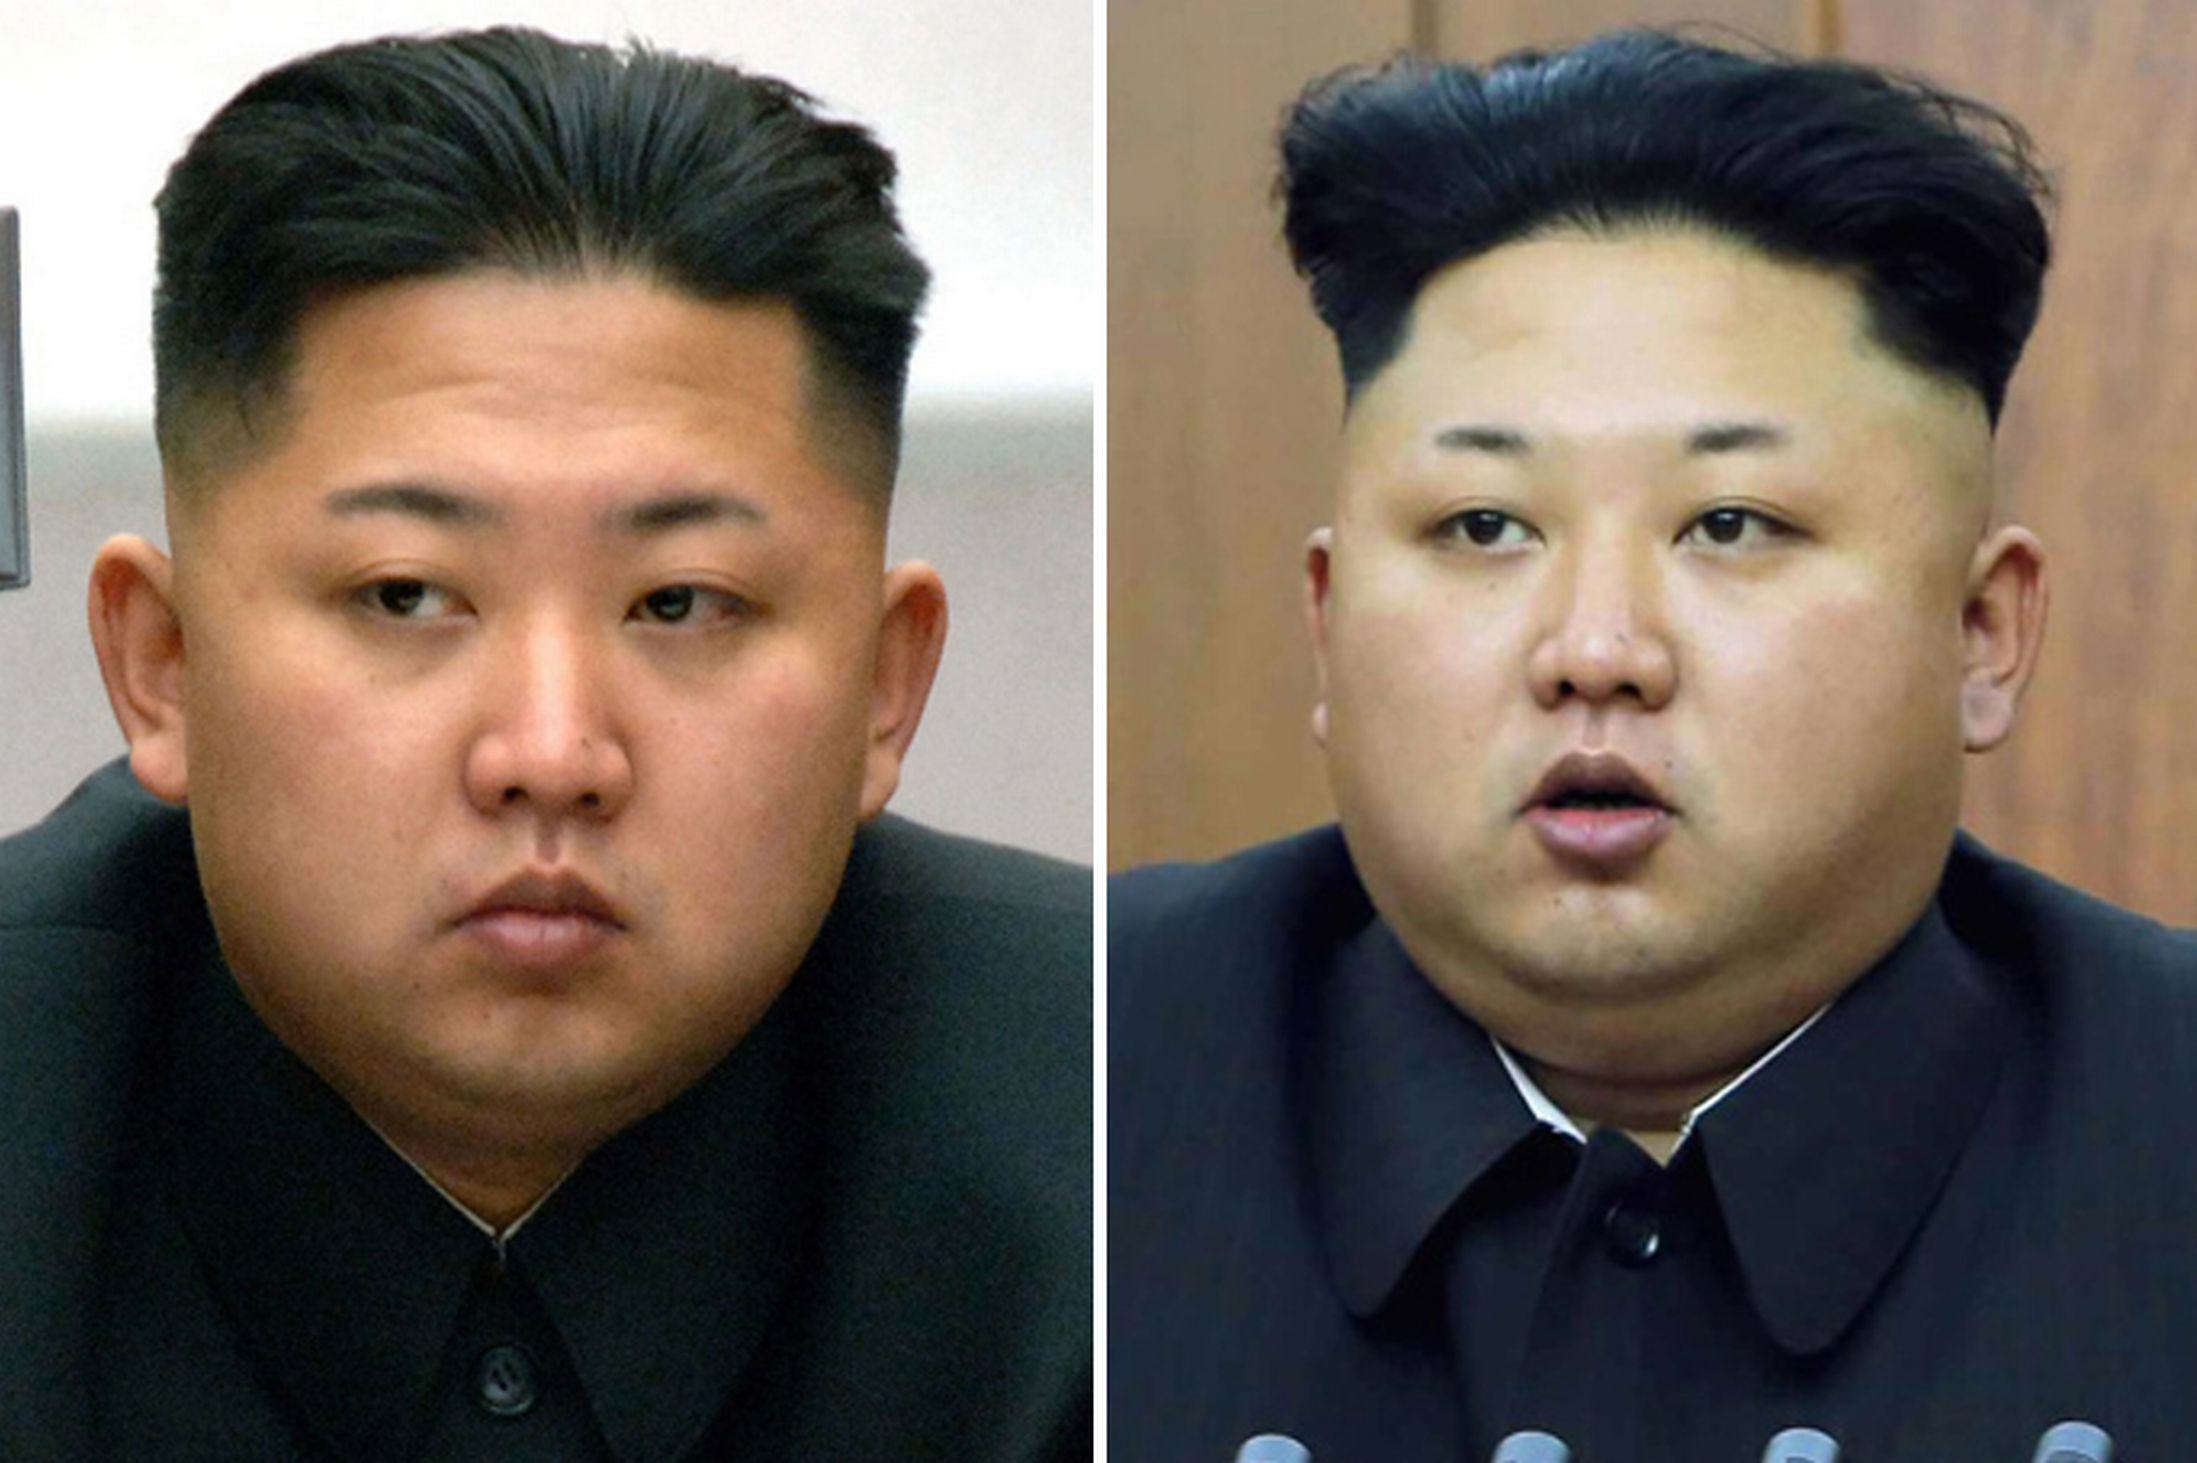 Someone Has Hacked Kim Jong Uns Eyebrows MAIN Kim Jong Un eyebrows